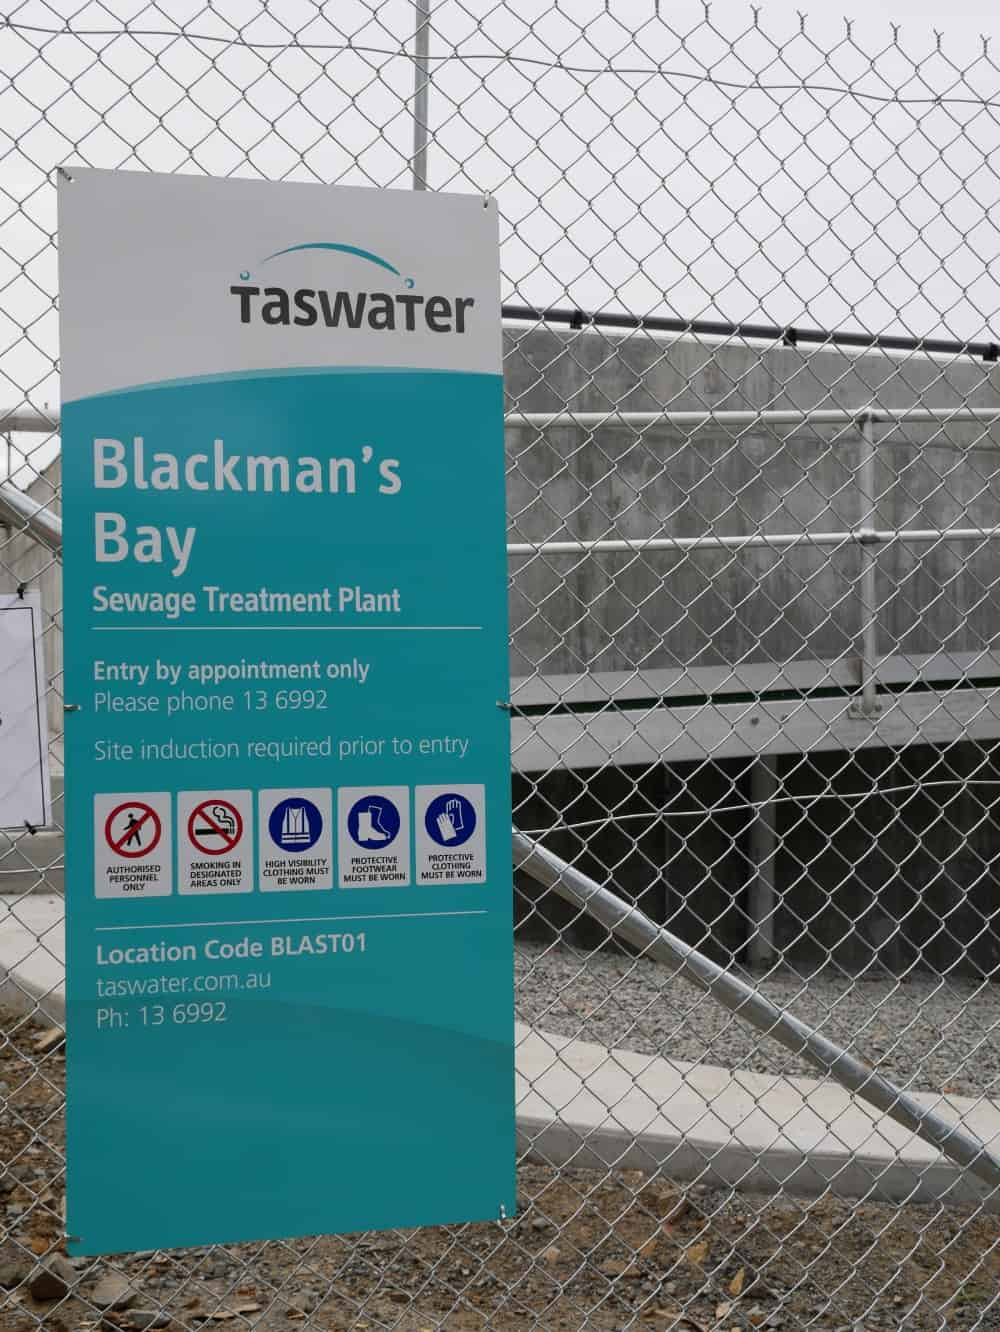 Upgrades underway at Blackmans Bay sewage treatment plant